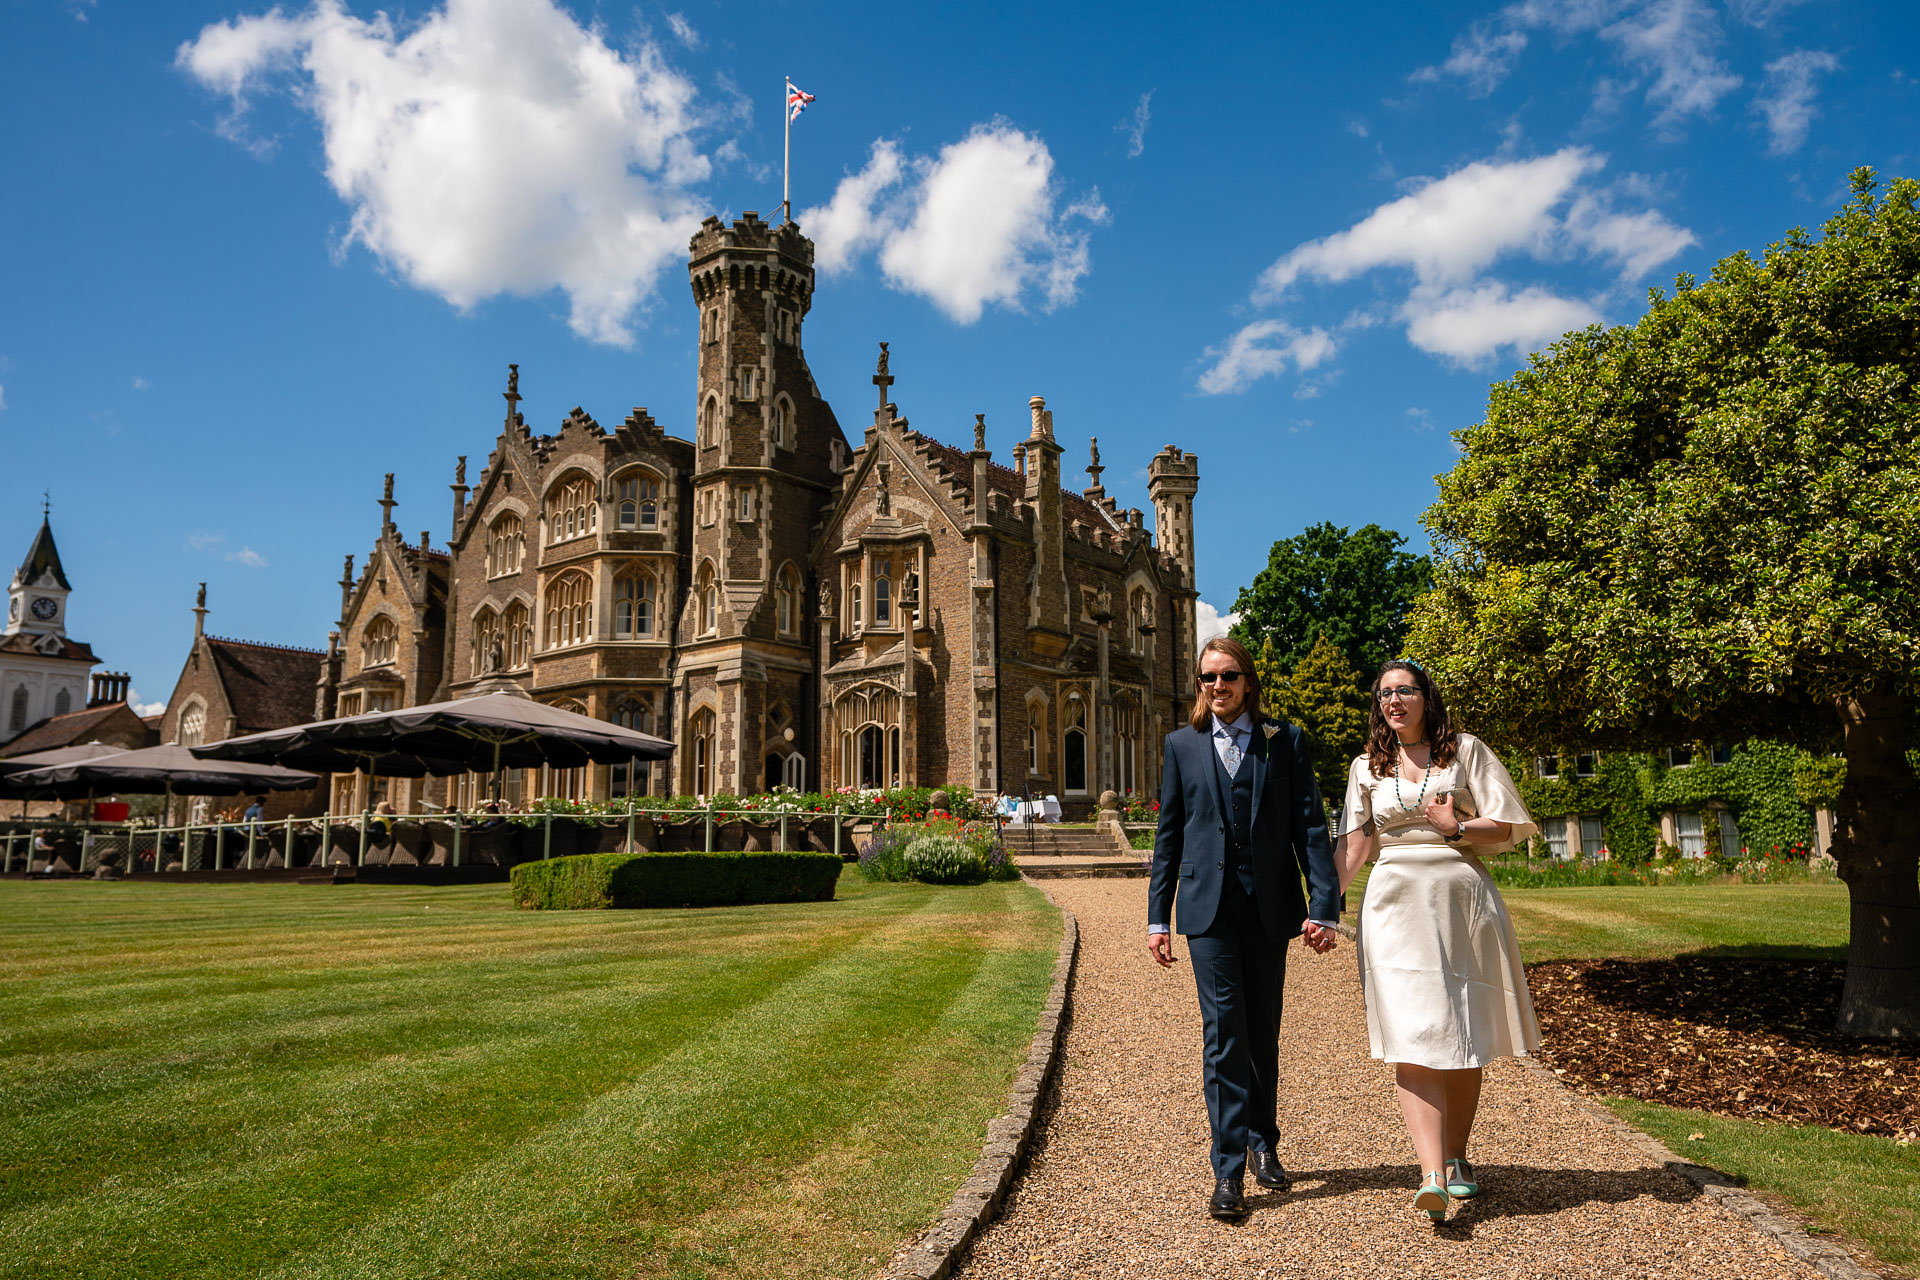 Windsor UK Elopement Couple Photography | The newlyweds walking in the grounds of The Oakley Court hotel